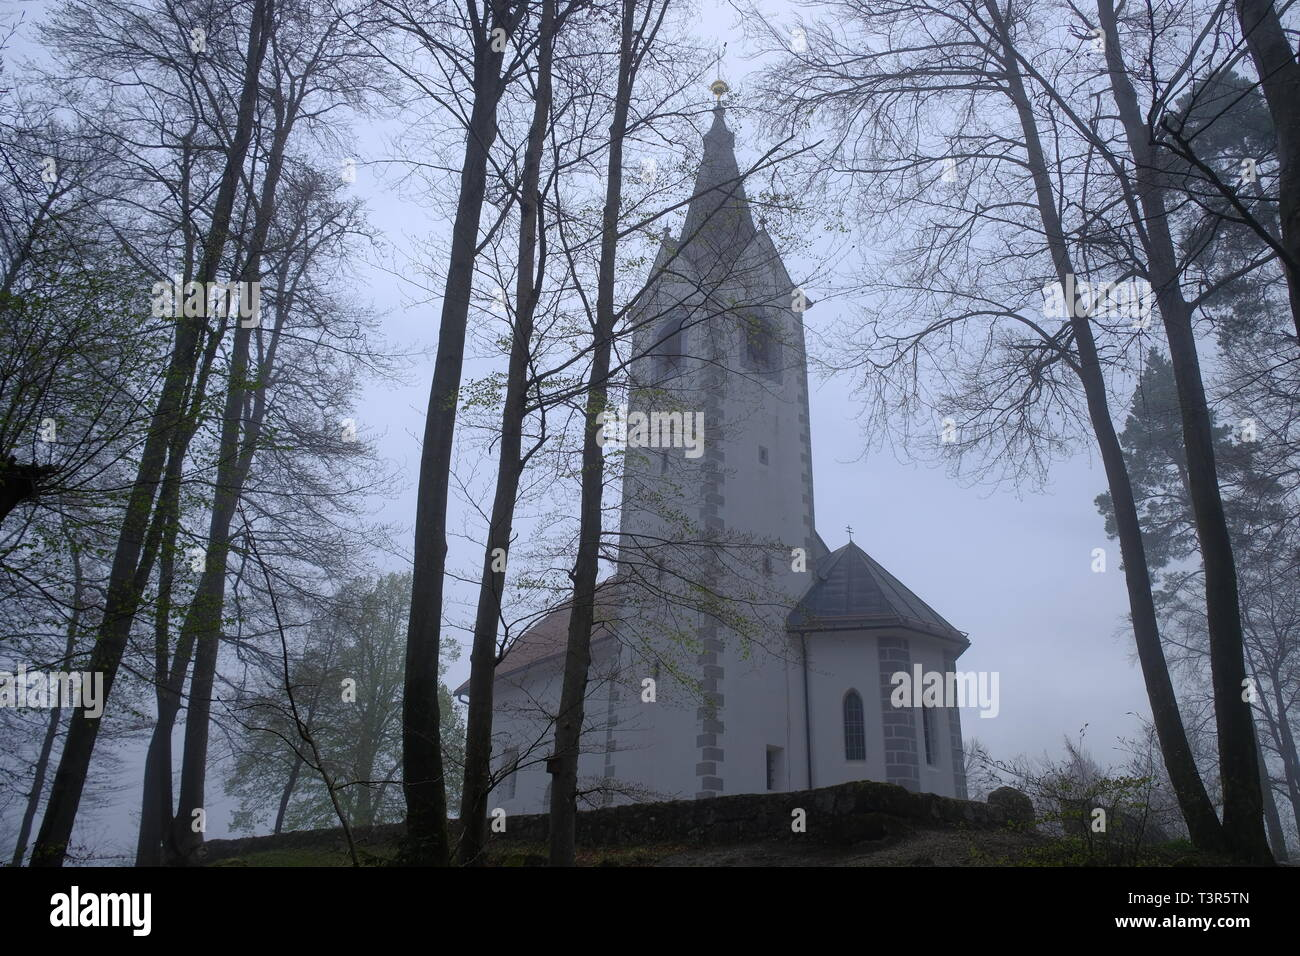 Sv Magdalena church at top of a hill on forest on a foggy misty morning,  view from low through the trees in Slovenia. Stock Photo